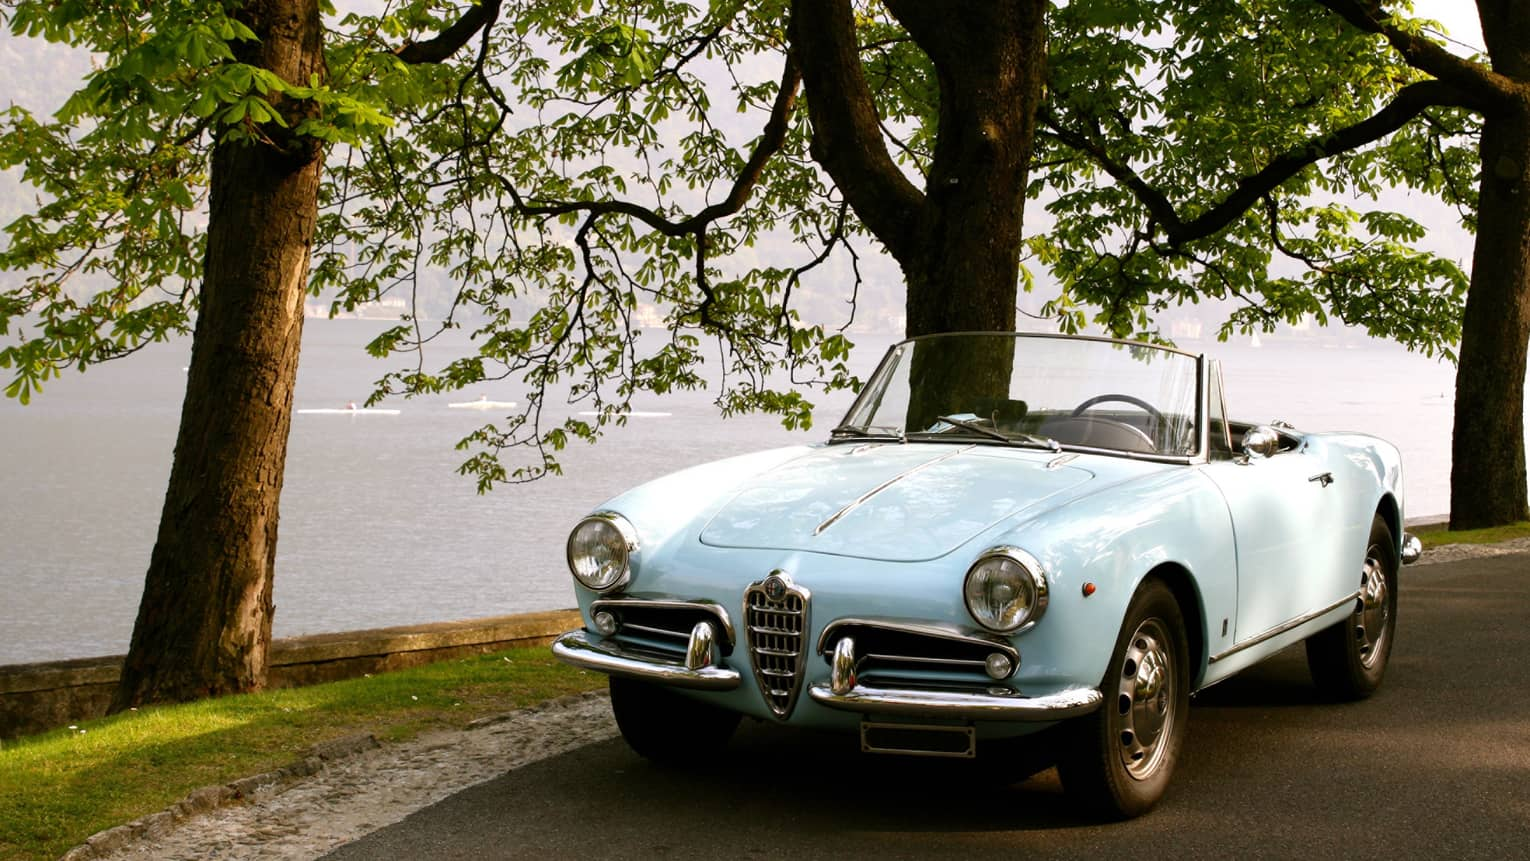 Light blue luxury Giulietta Spider convertible car parked on road by trees, water